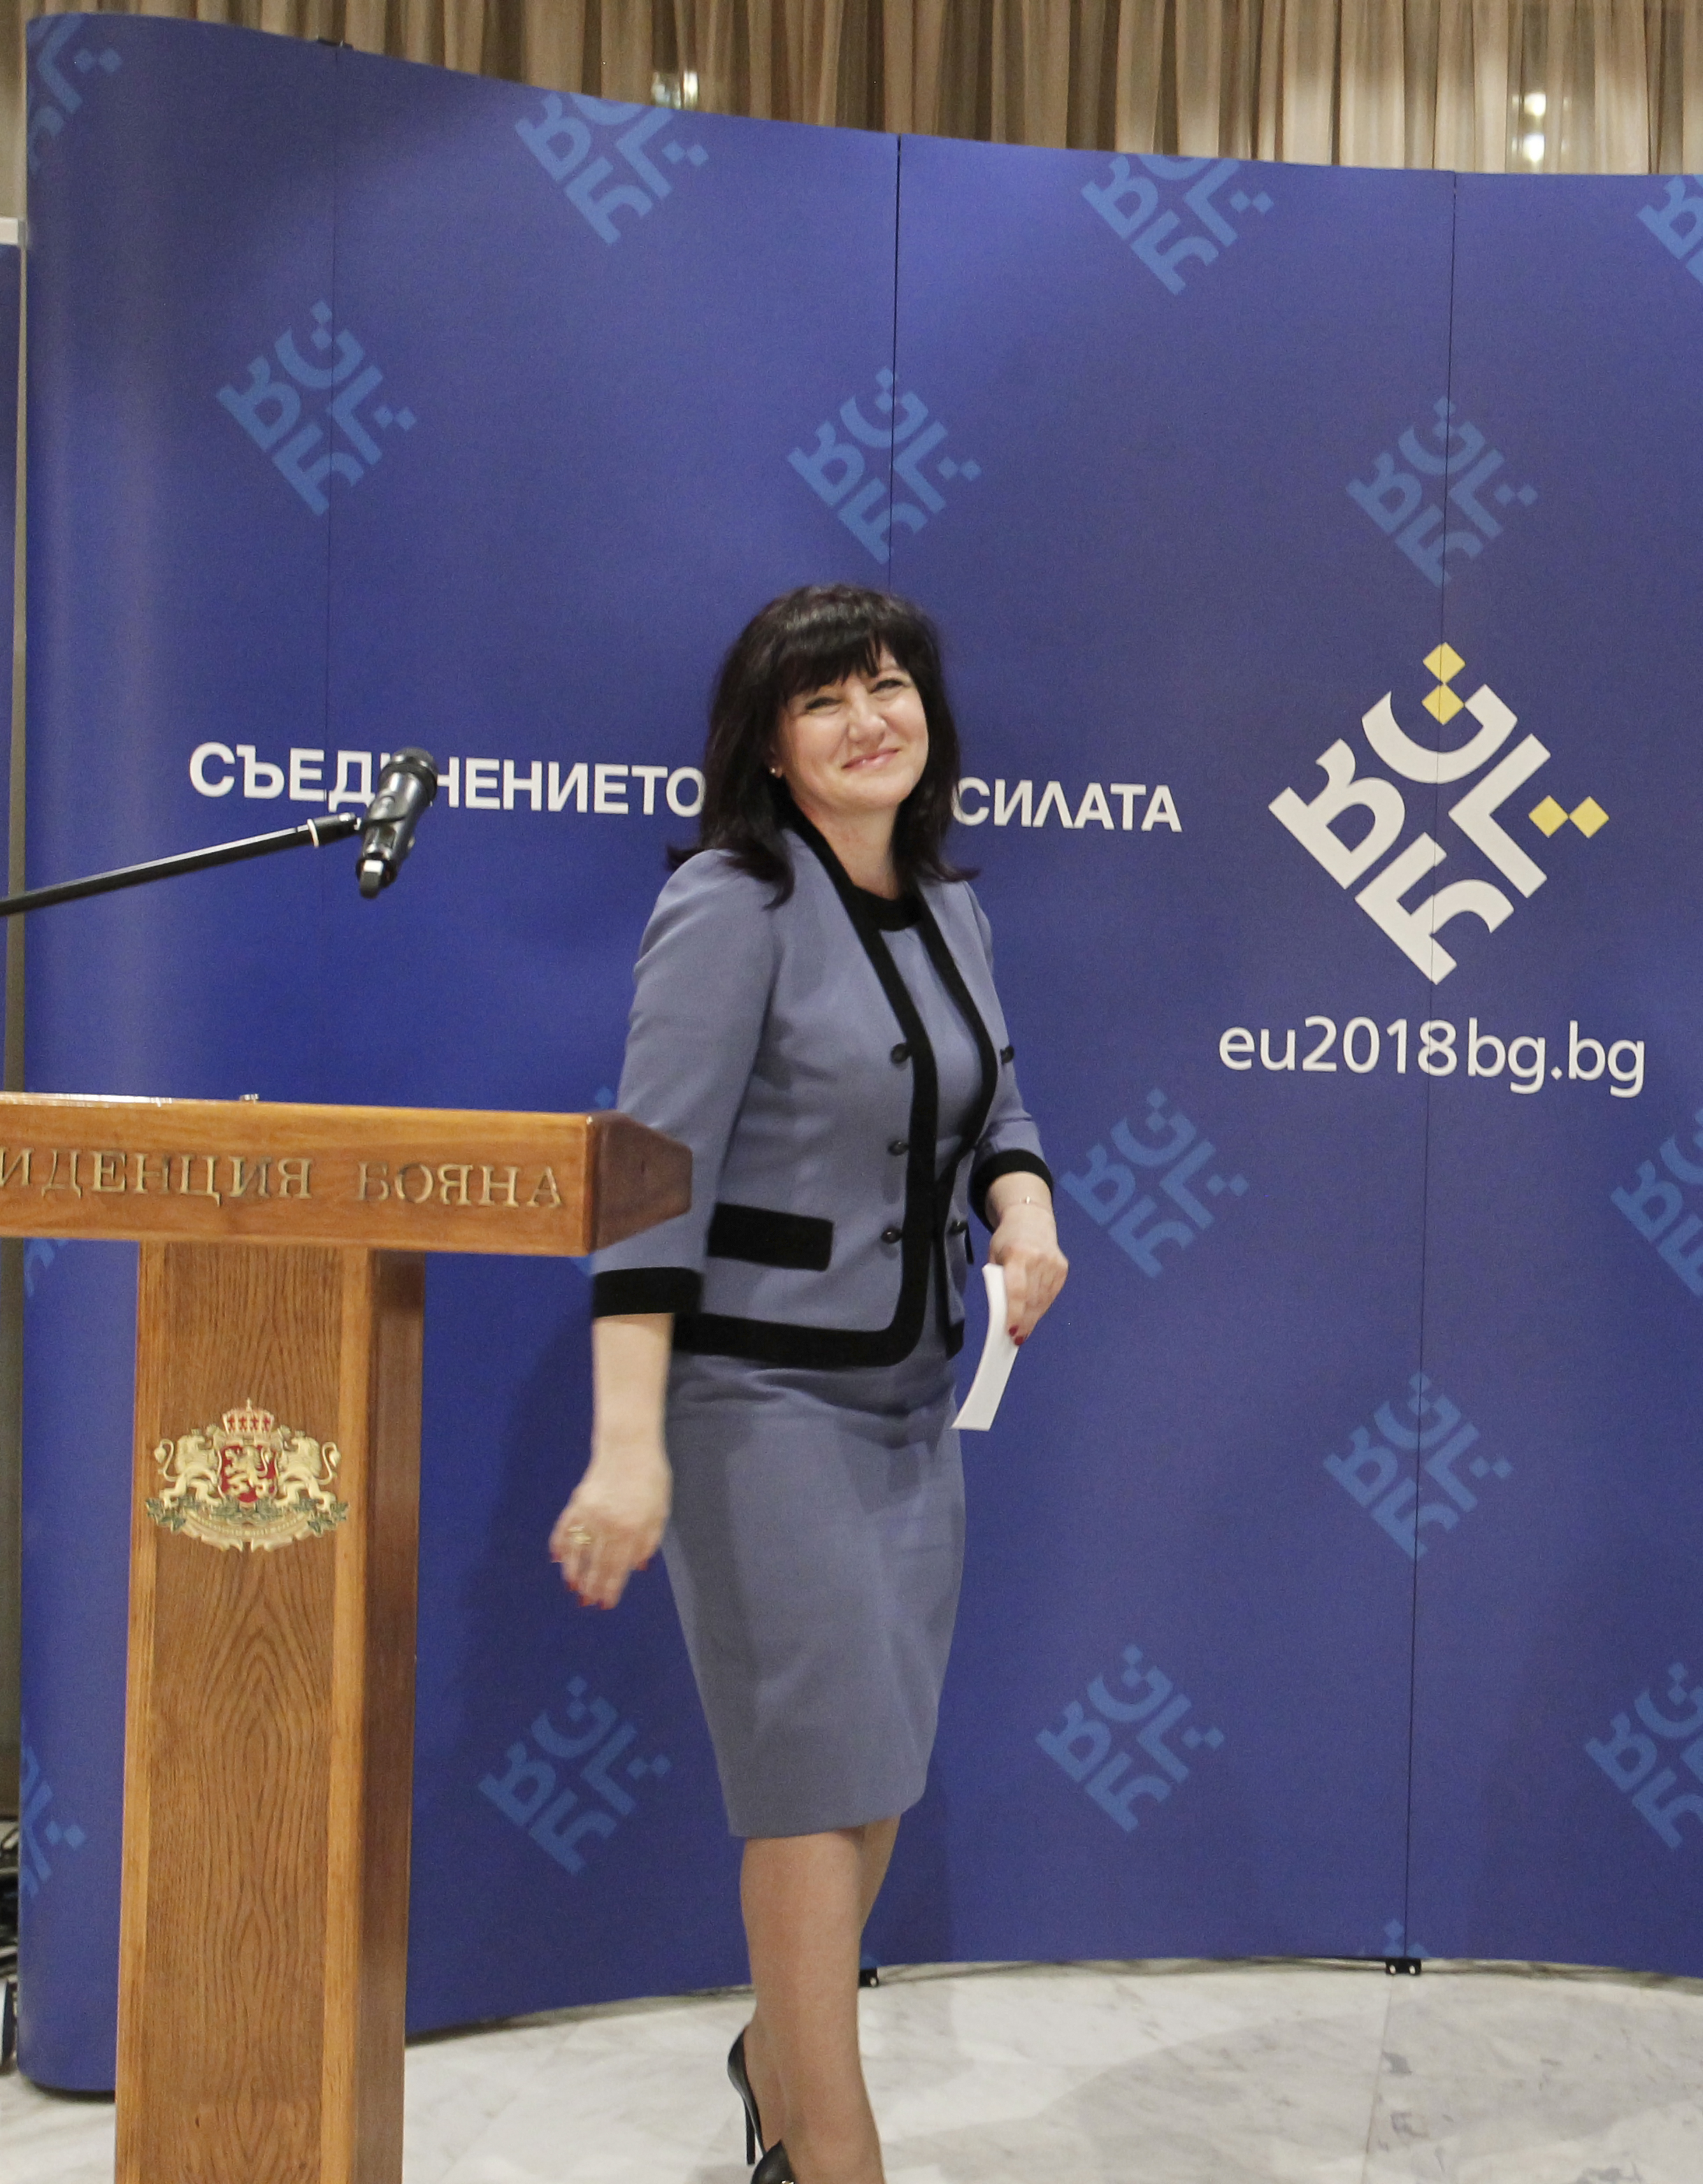 Parliamentary scrutiny will increase the democratic legitimacy of Europol, said National Assembly President Tsveta Karayancheva